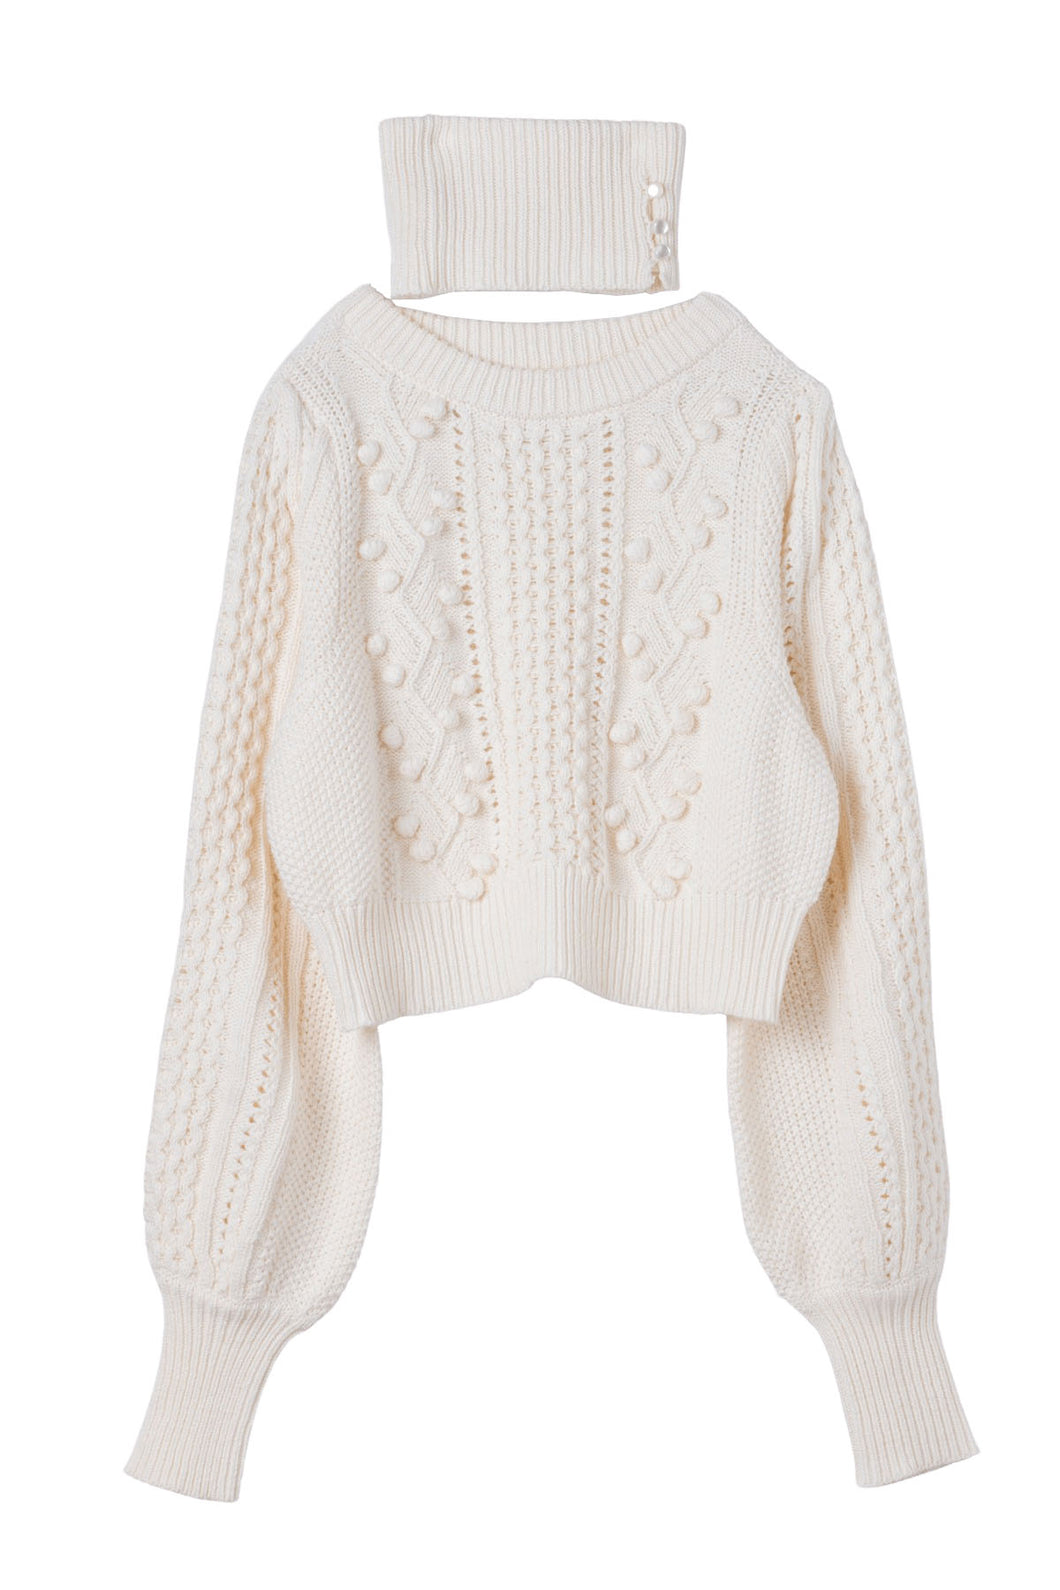 Cotton flower knit muguet